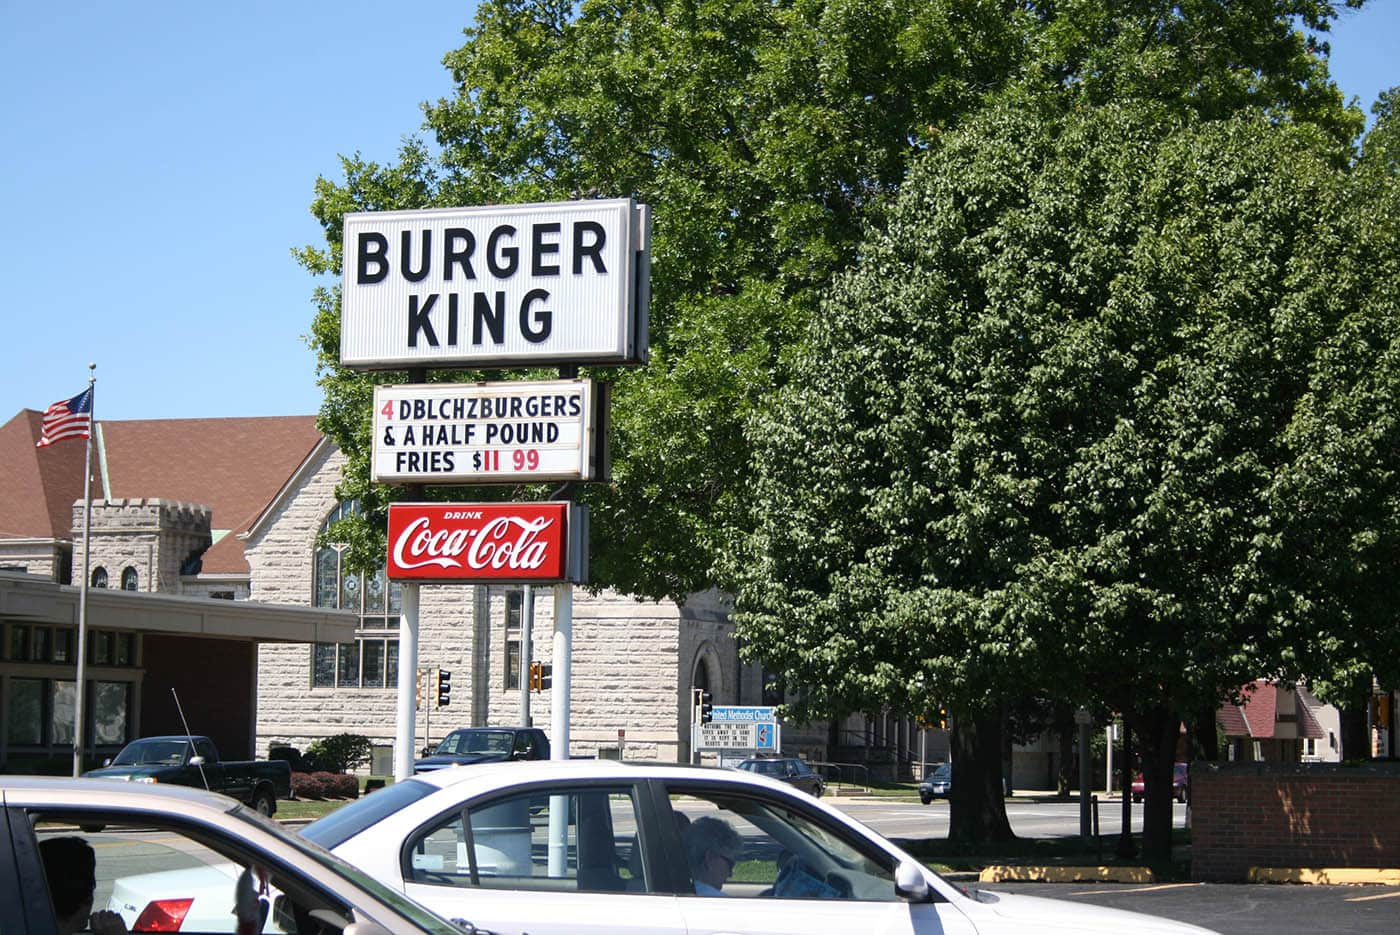 Burger King that is not the Chain Burger King in Mattoon, Illinois